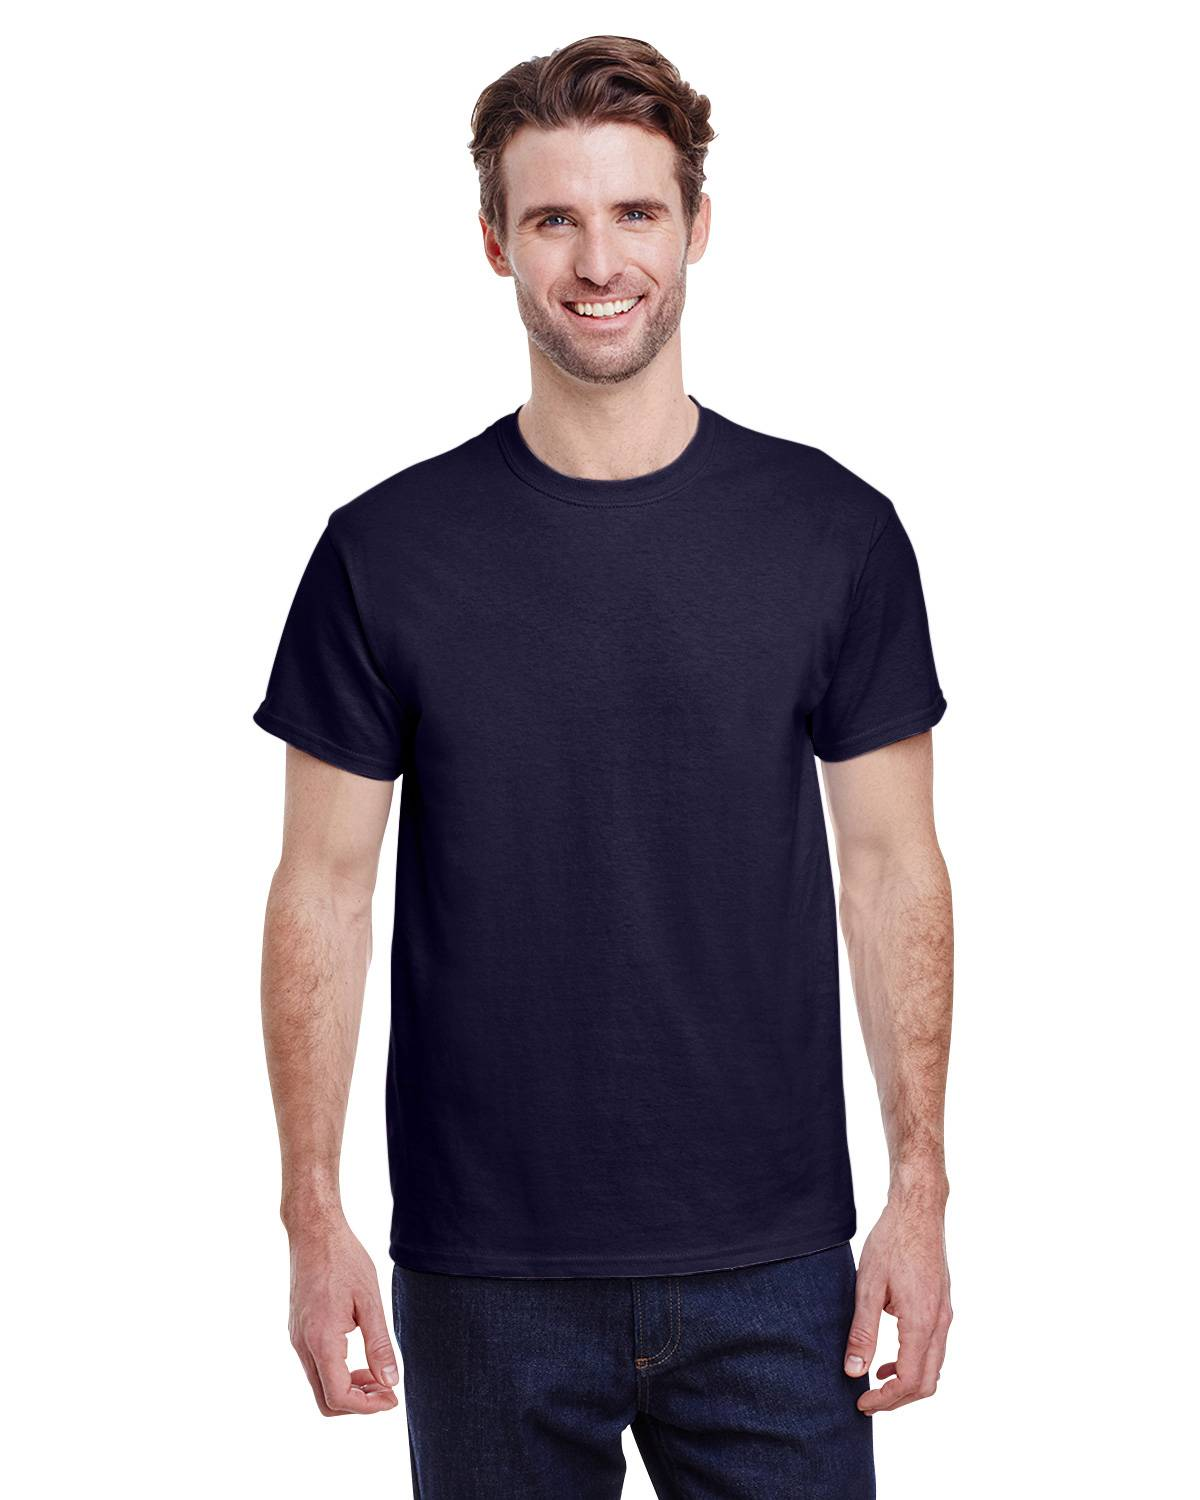 Gildan G5000 Short Sleeve Tee - Navy - XL G5000